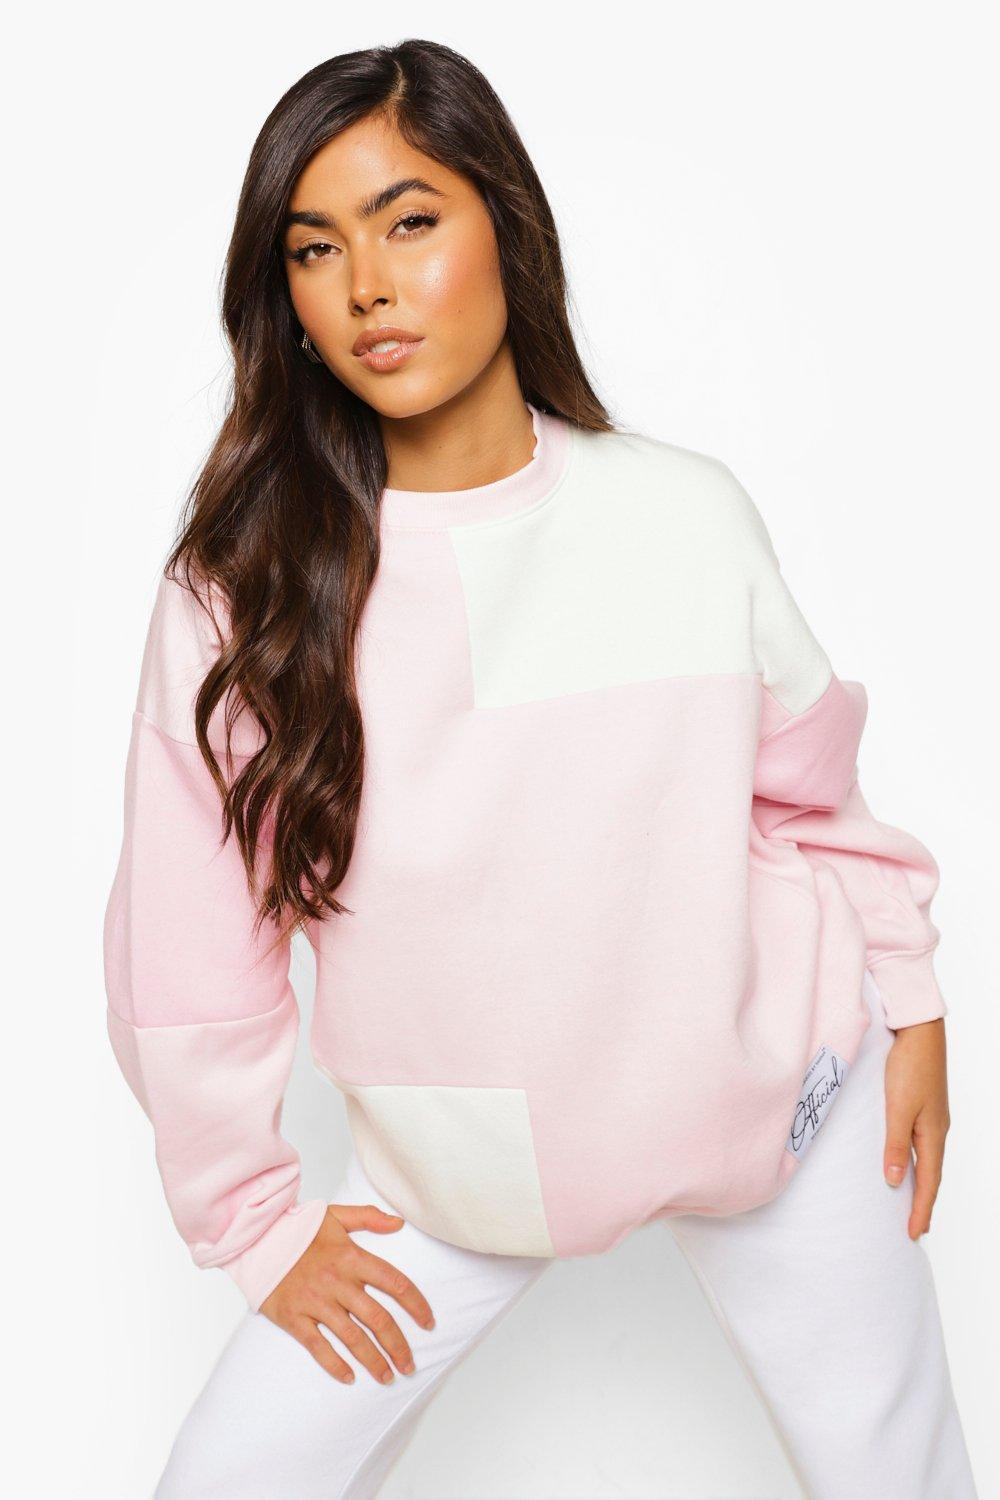 Womens Pinkfarbener Pullover Mit Colorblock Und Official-Label - Rosa - M, Rosa